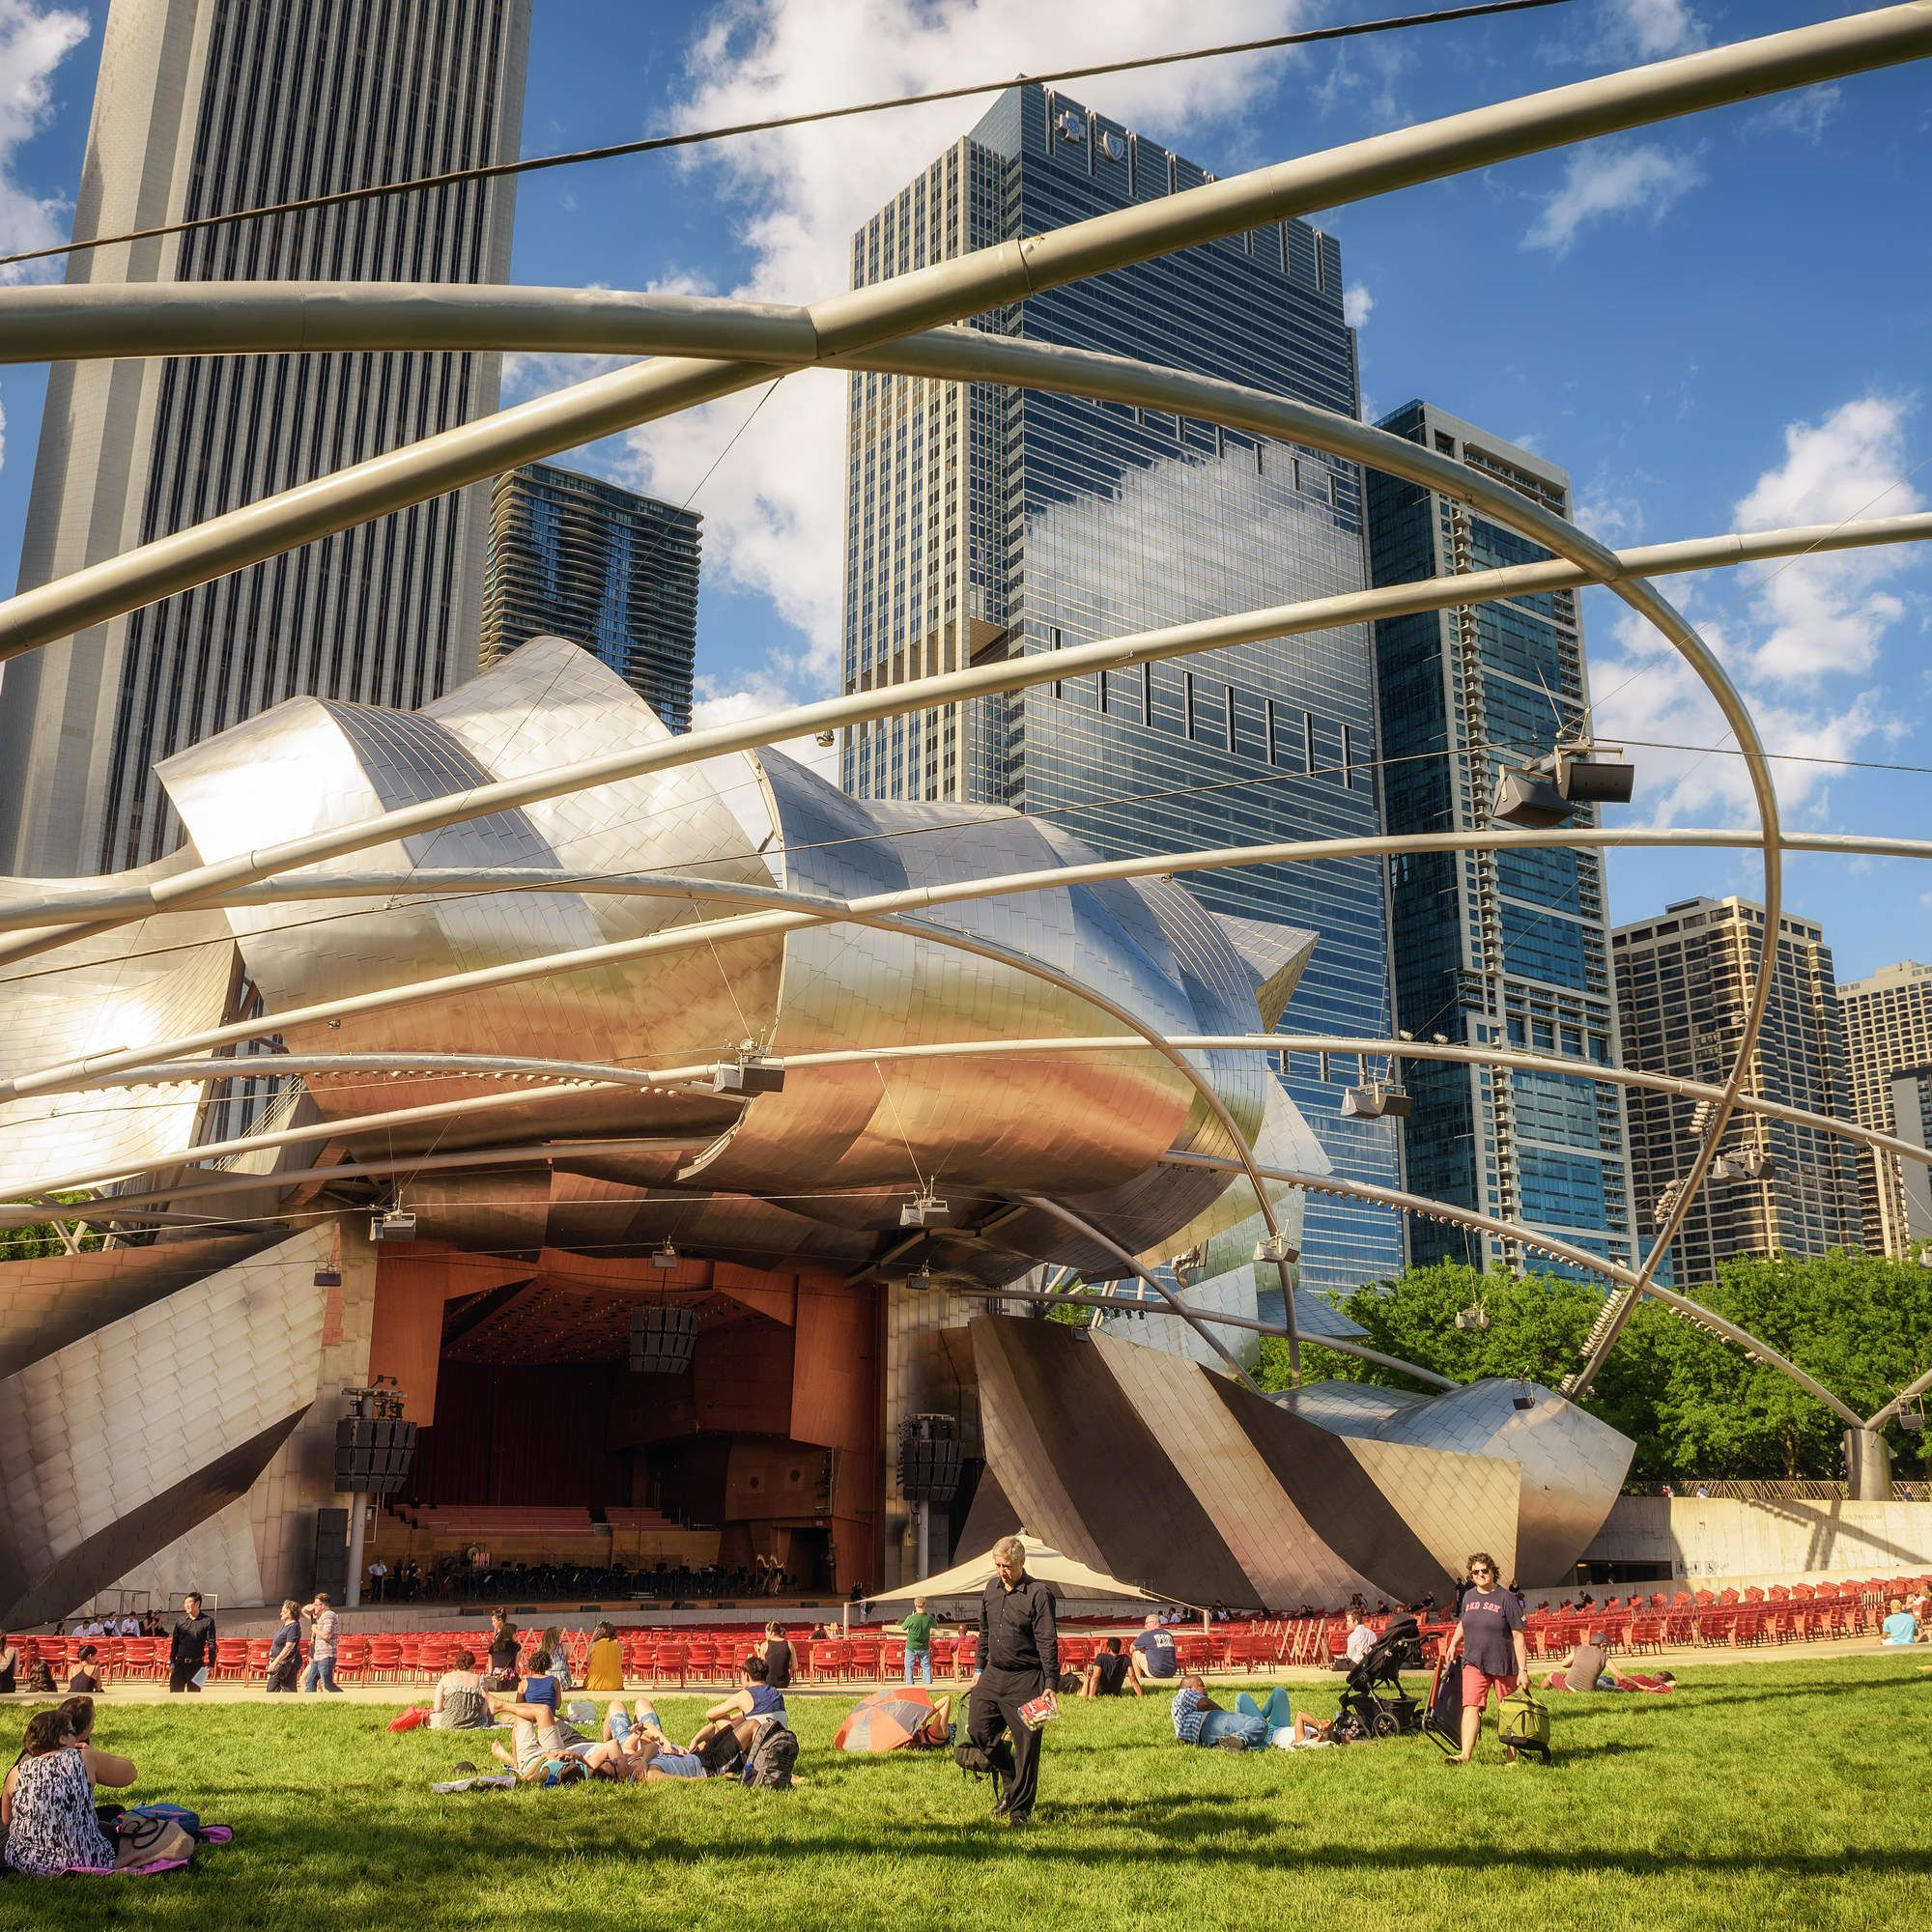 Actually Cool Things To Do In Chicago This Summer Chicago Things To Do Chicago Vacation Chicago Fun